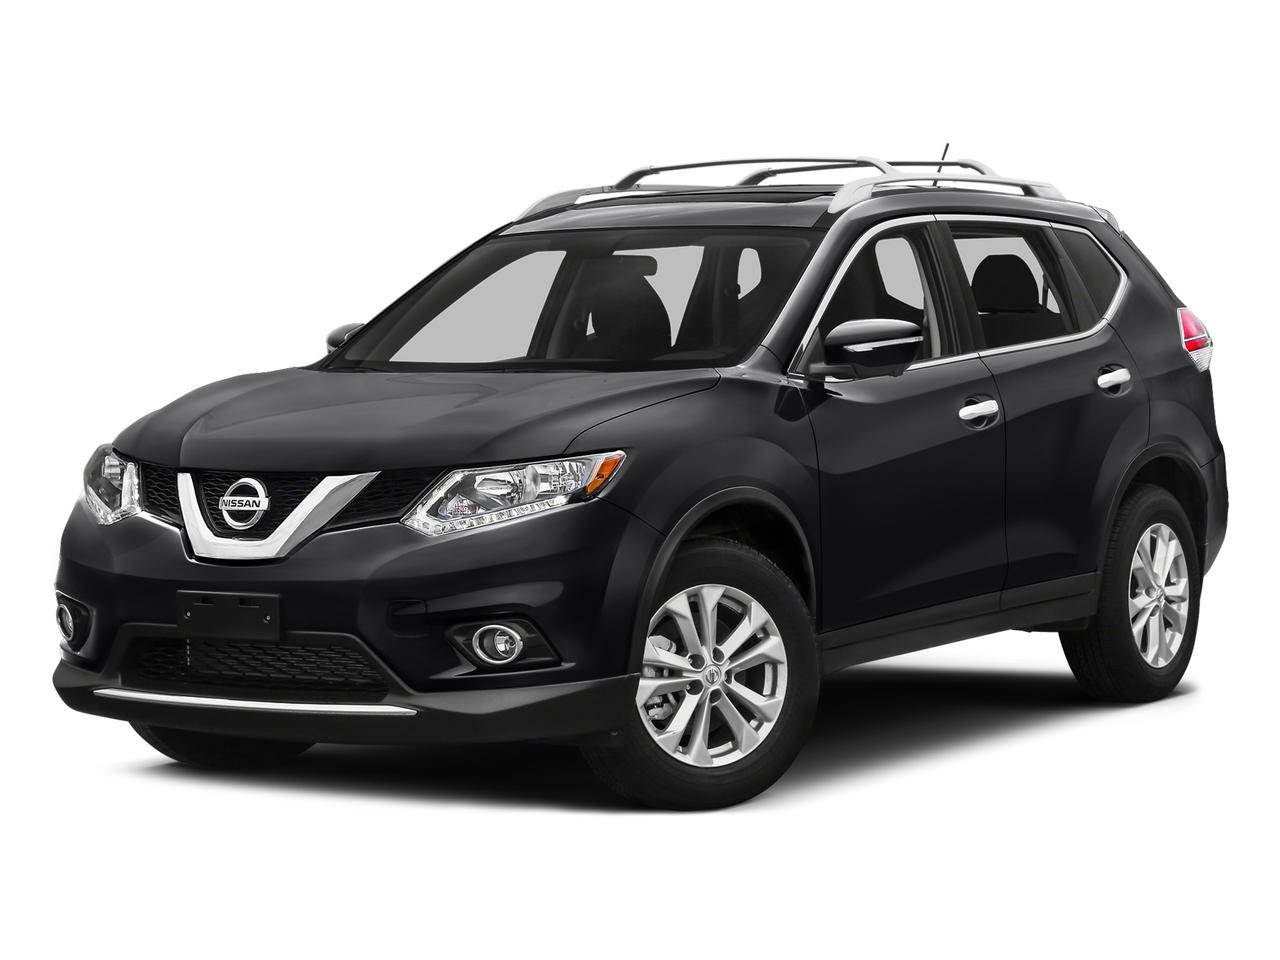 2016 Nissan Rogue Vehicle Photo in Broussard, LA 70518